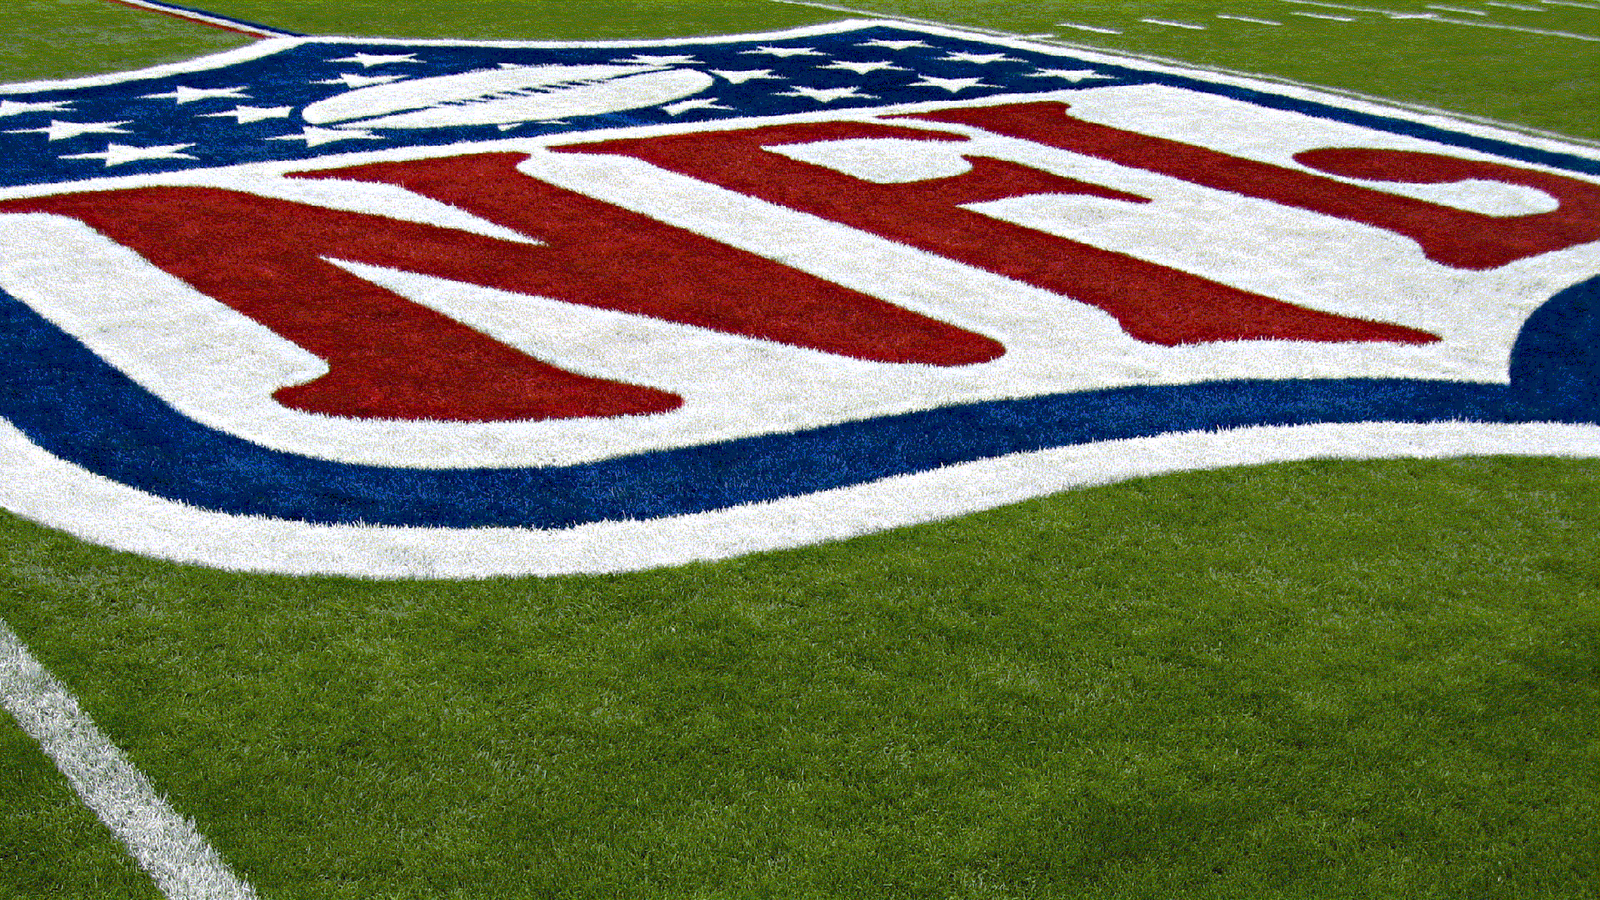 NFL Wallpaper HD 282